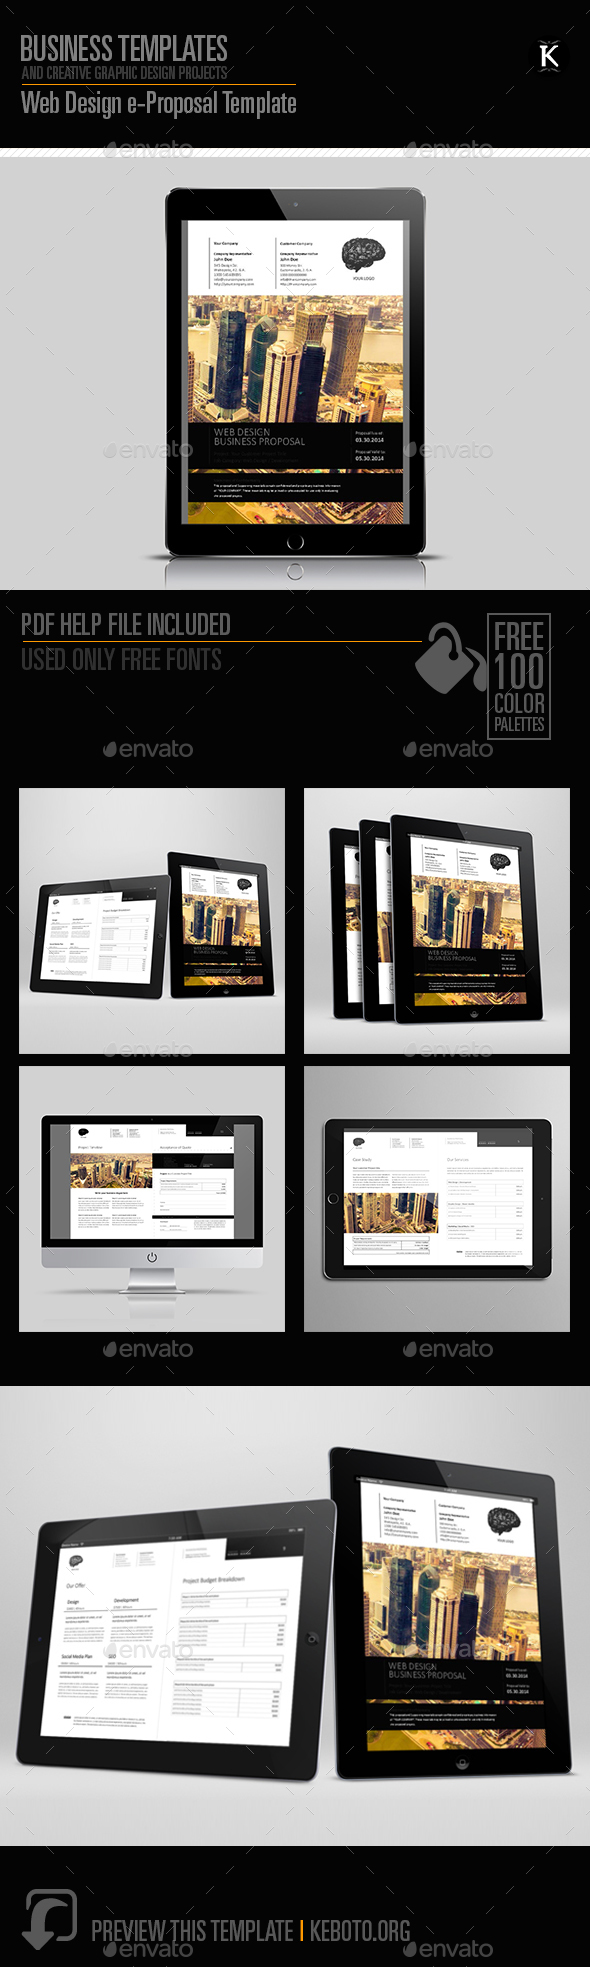 web design e proposal template by keboto graphicriver. Black Bedroom Furniture Sets. Home Design Ideas